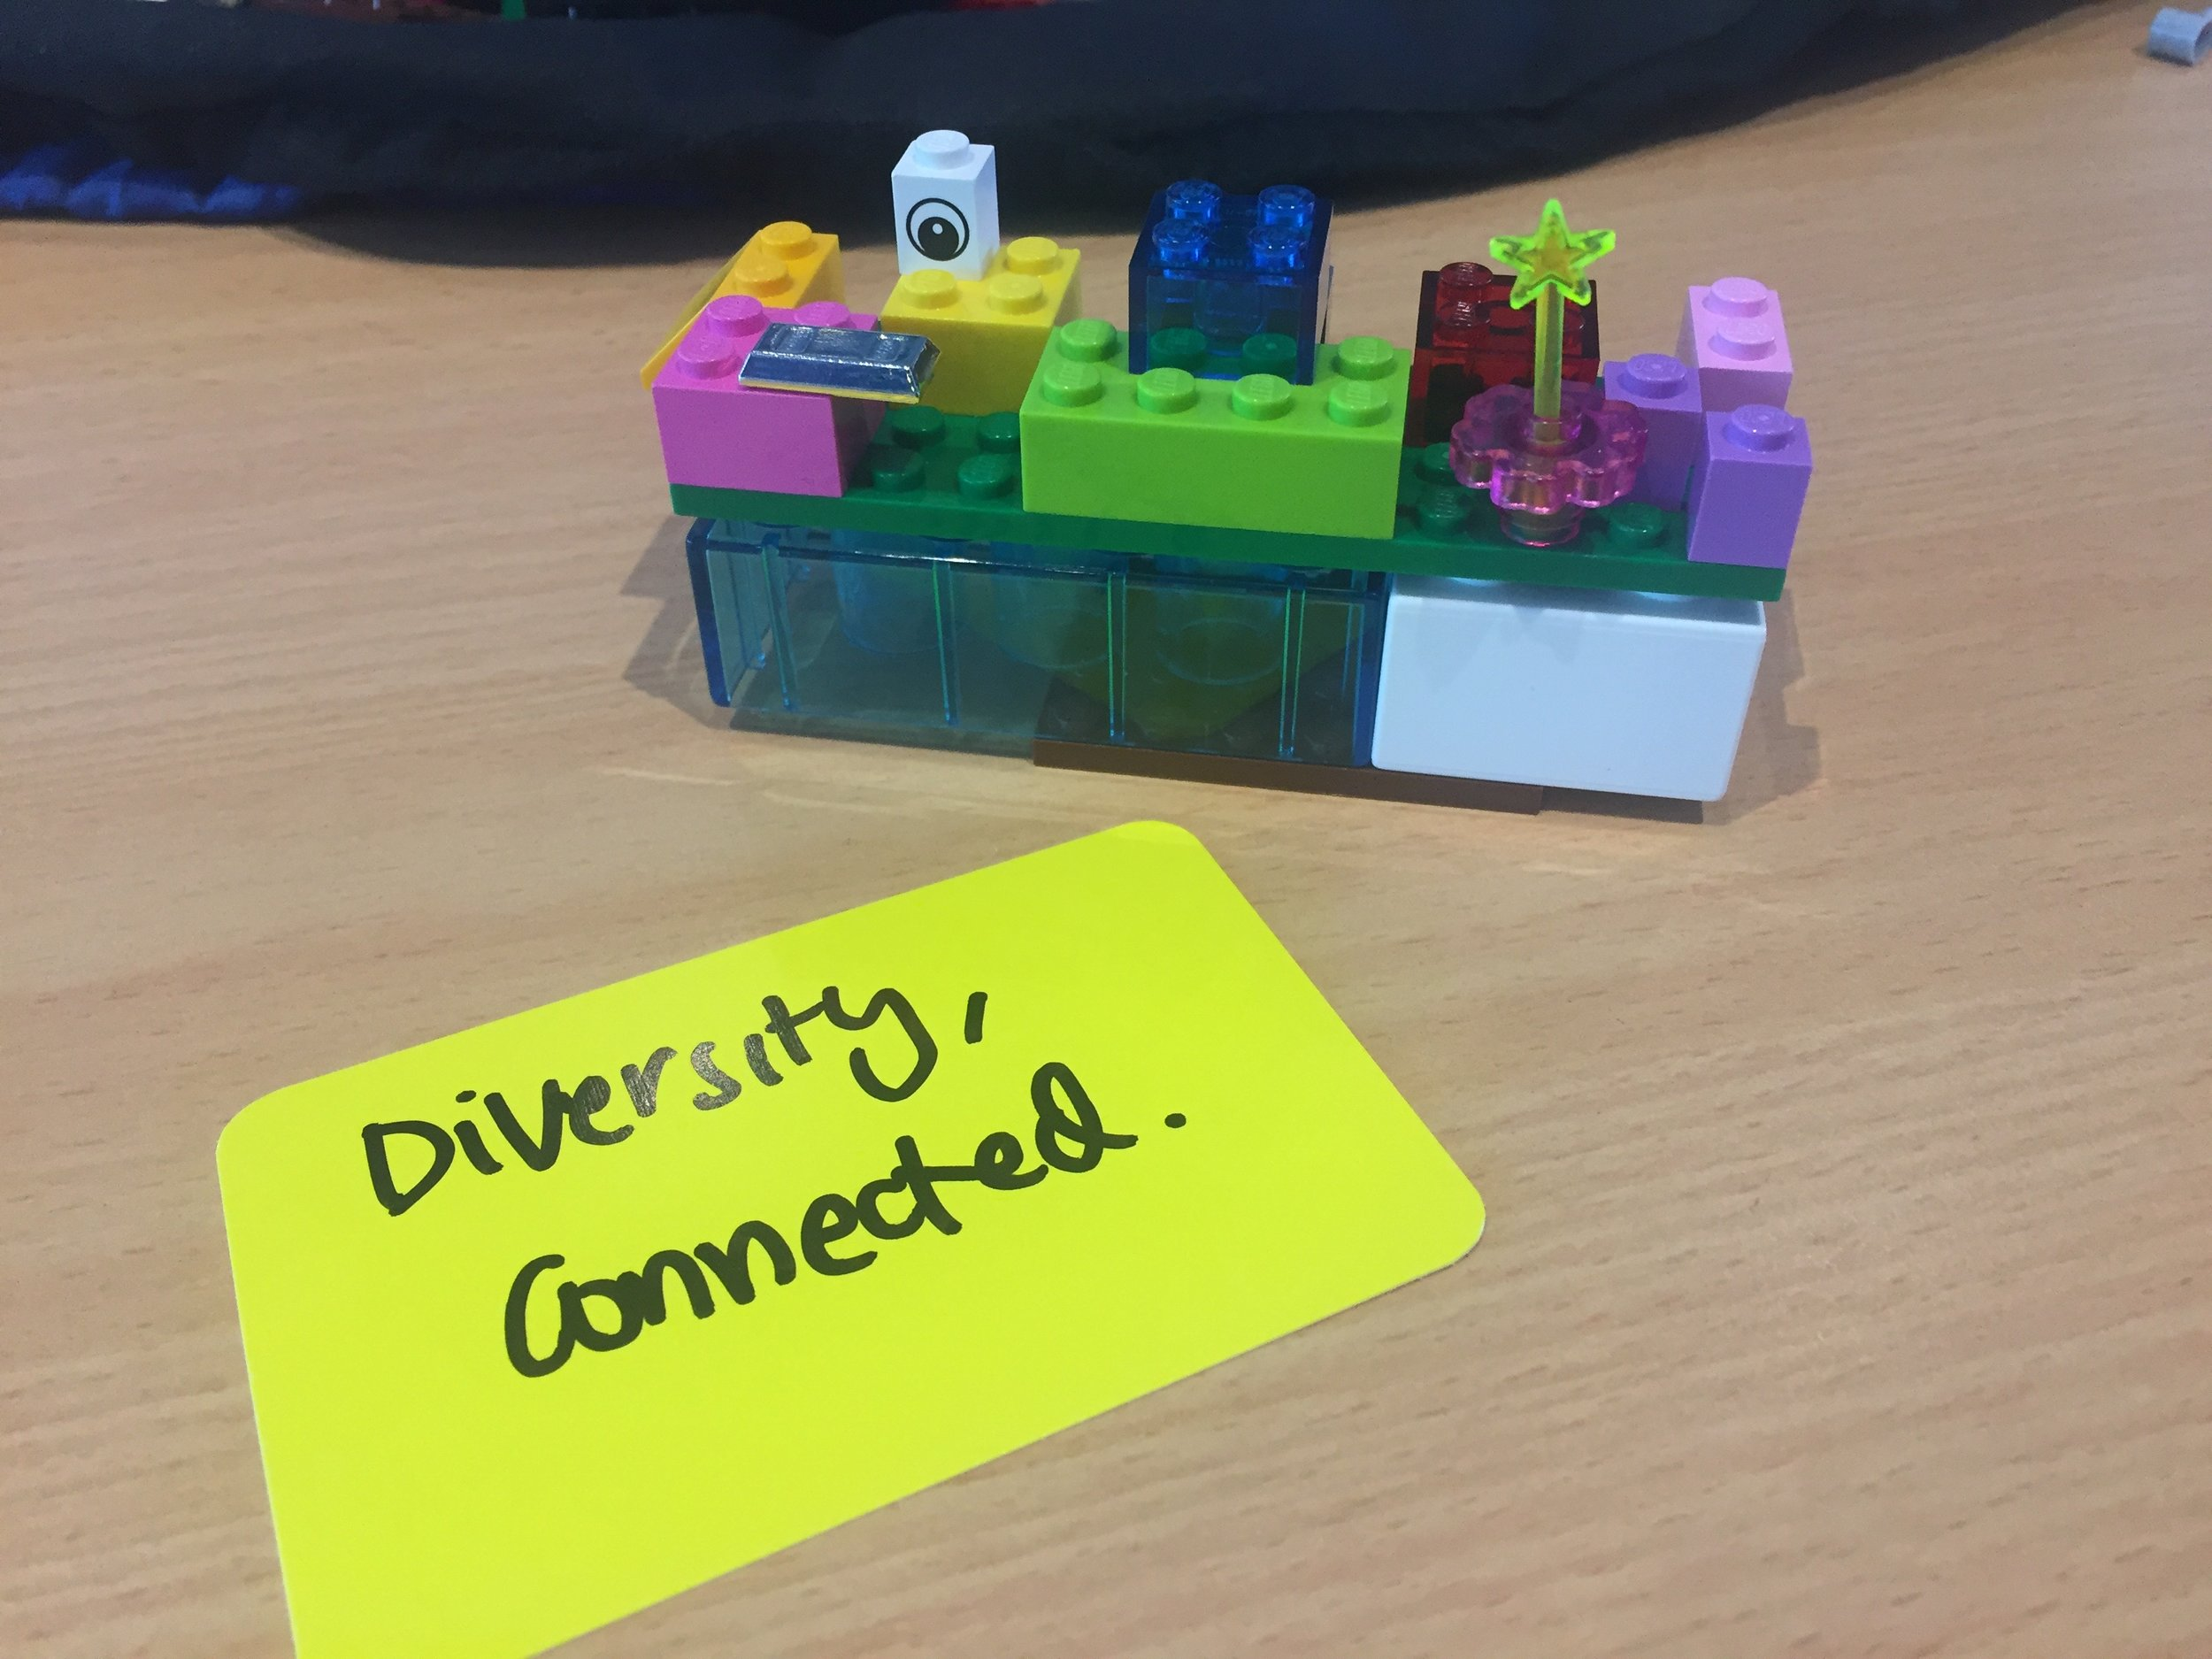 Giving Lego Play a go - using story telling and metaphor with Lego for creative problem solving